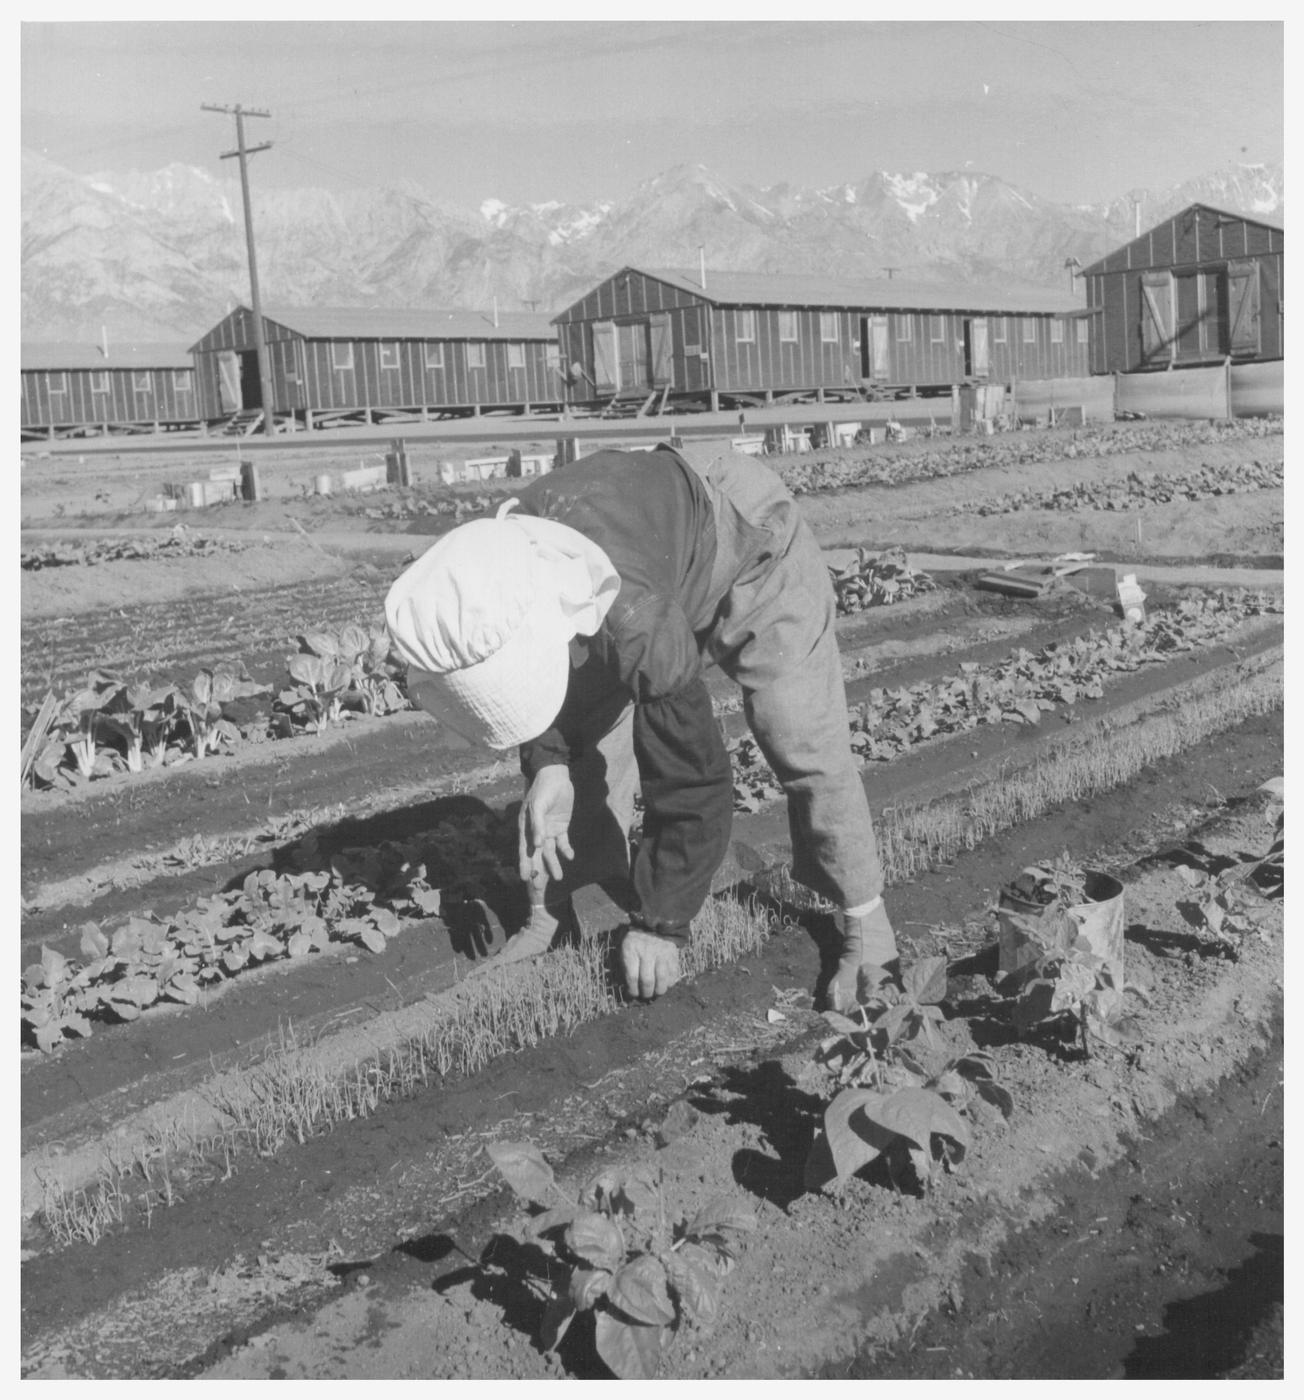 japanese internment camps Watch video family separation is being compared to japanese internment it took decades for the us to admit that policy was wrong.